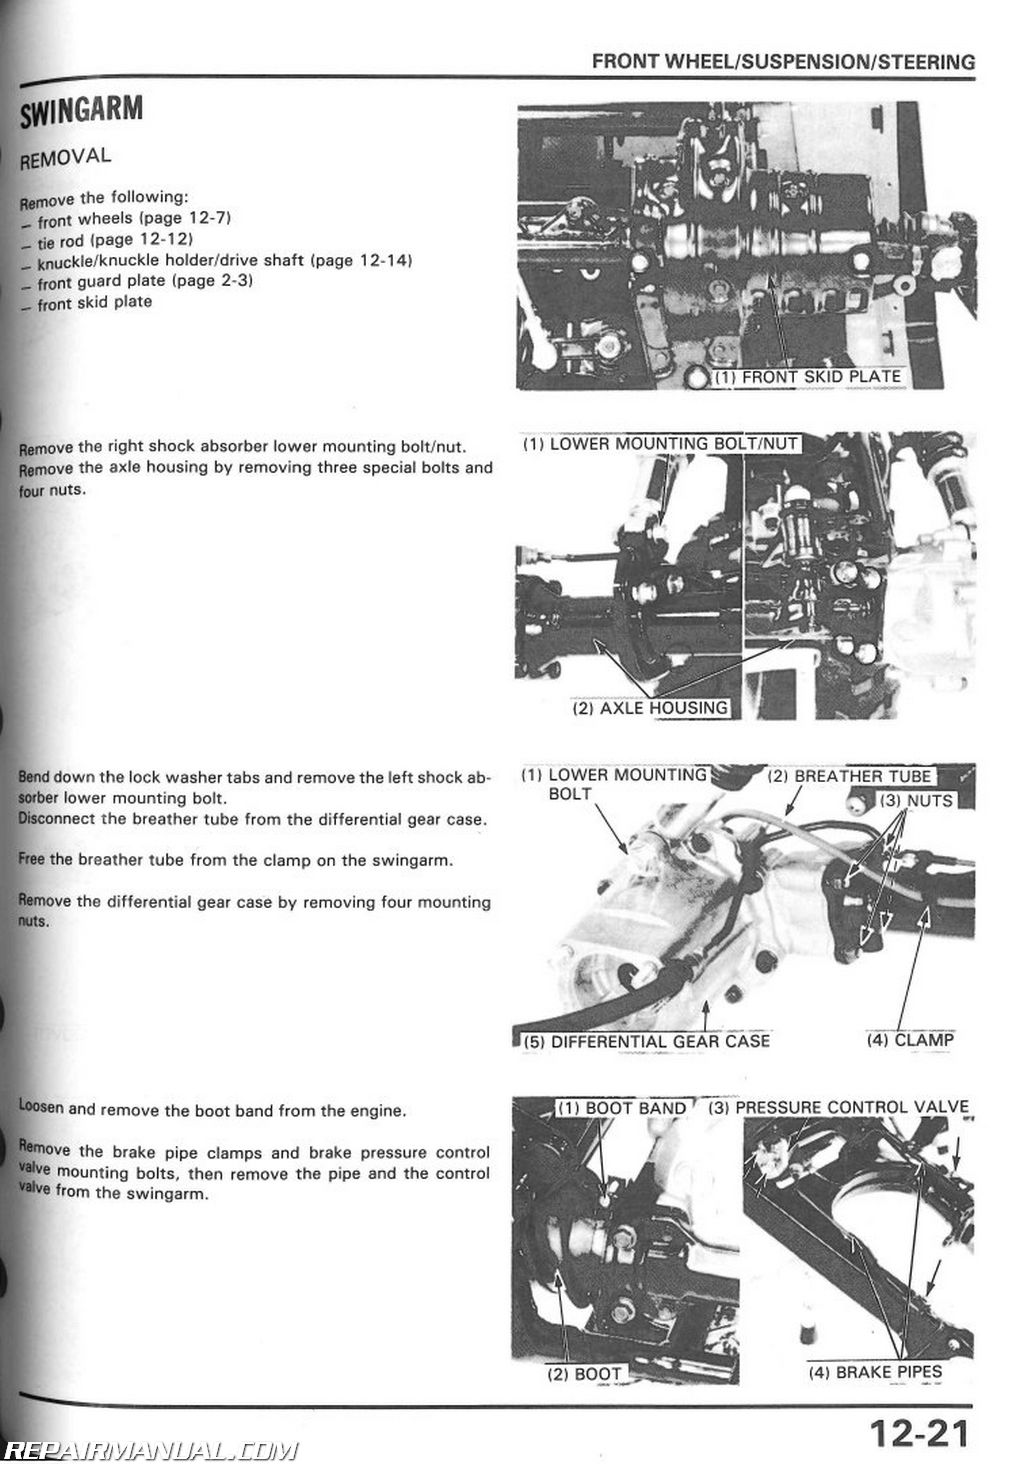 1989 honda accord ignition wiring diagram e2 energy 1984 200es 31 images